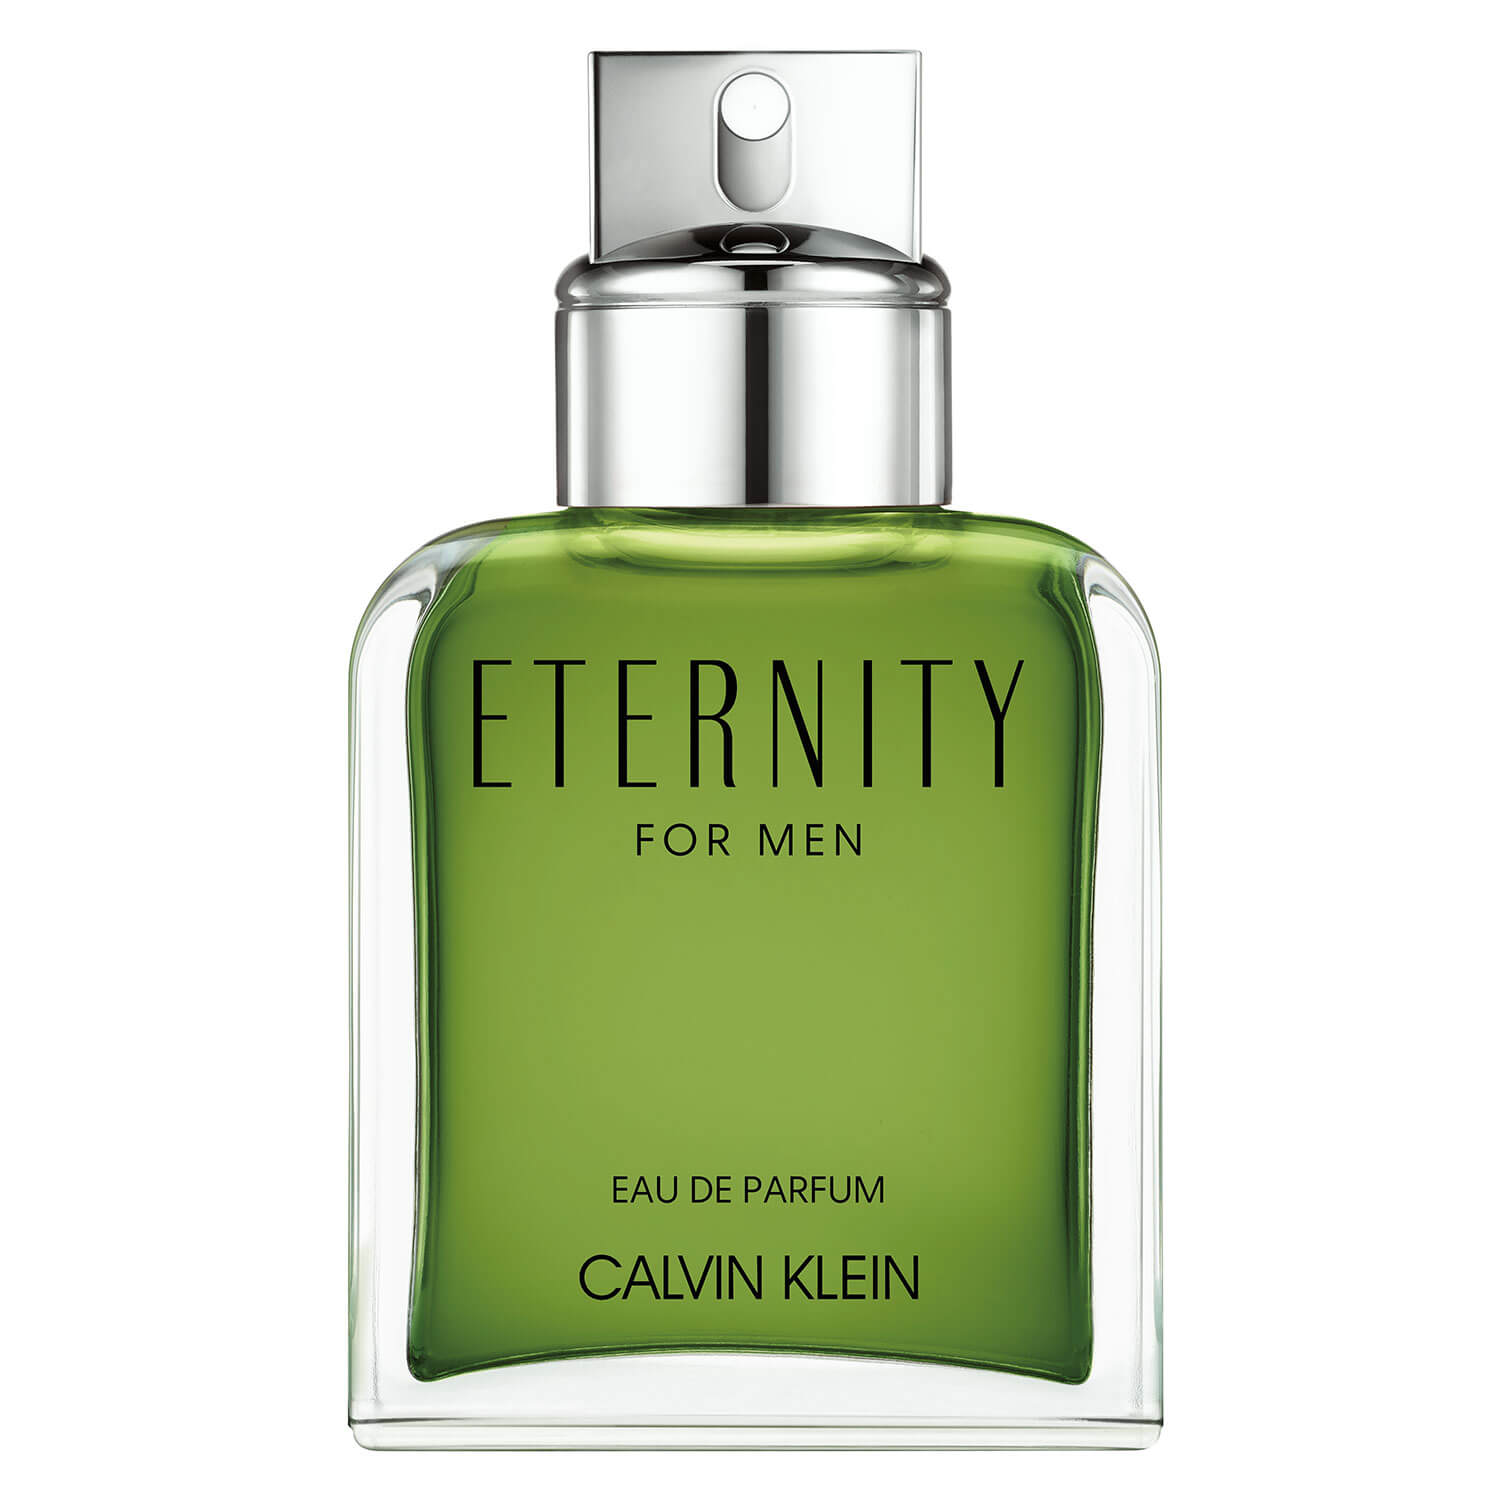 Eternity - Male Eau de Parfum